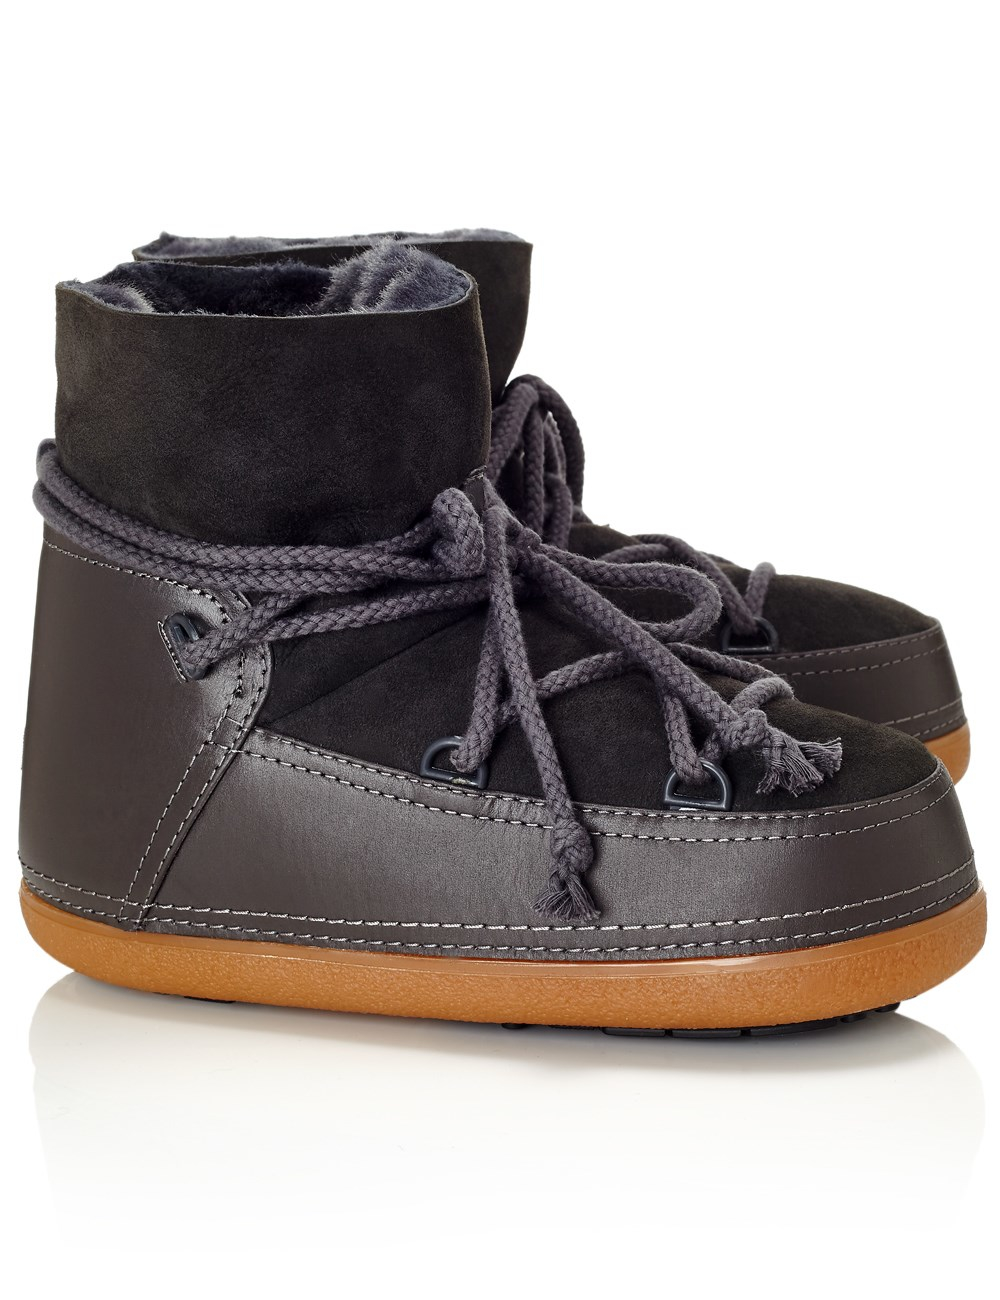 Ikkii Leather and Suede Snow Boots in Gray | Lyst